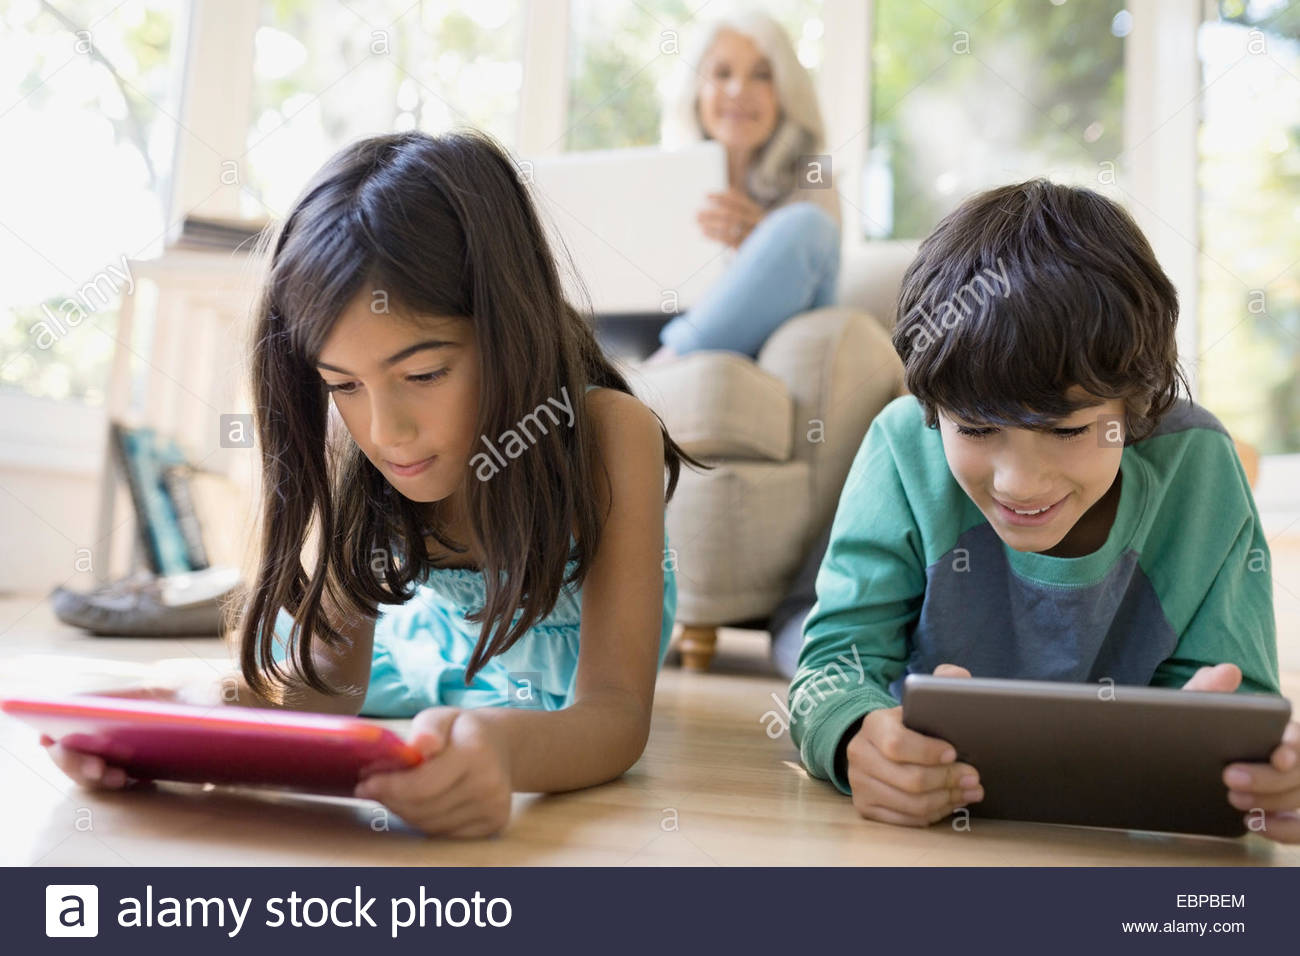 Grandmother watching grandchildren use digital tablets - Stock Image